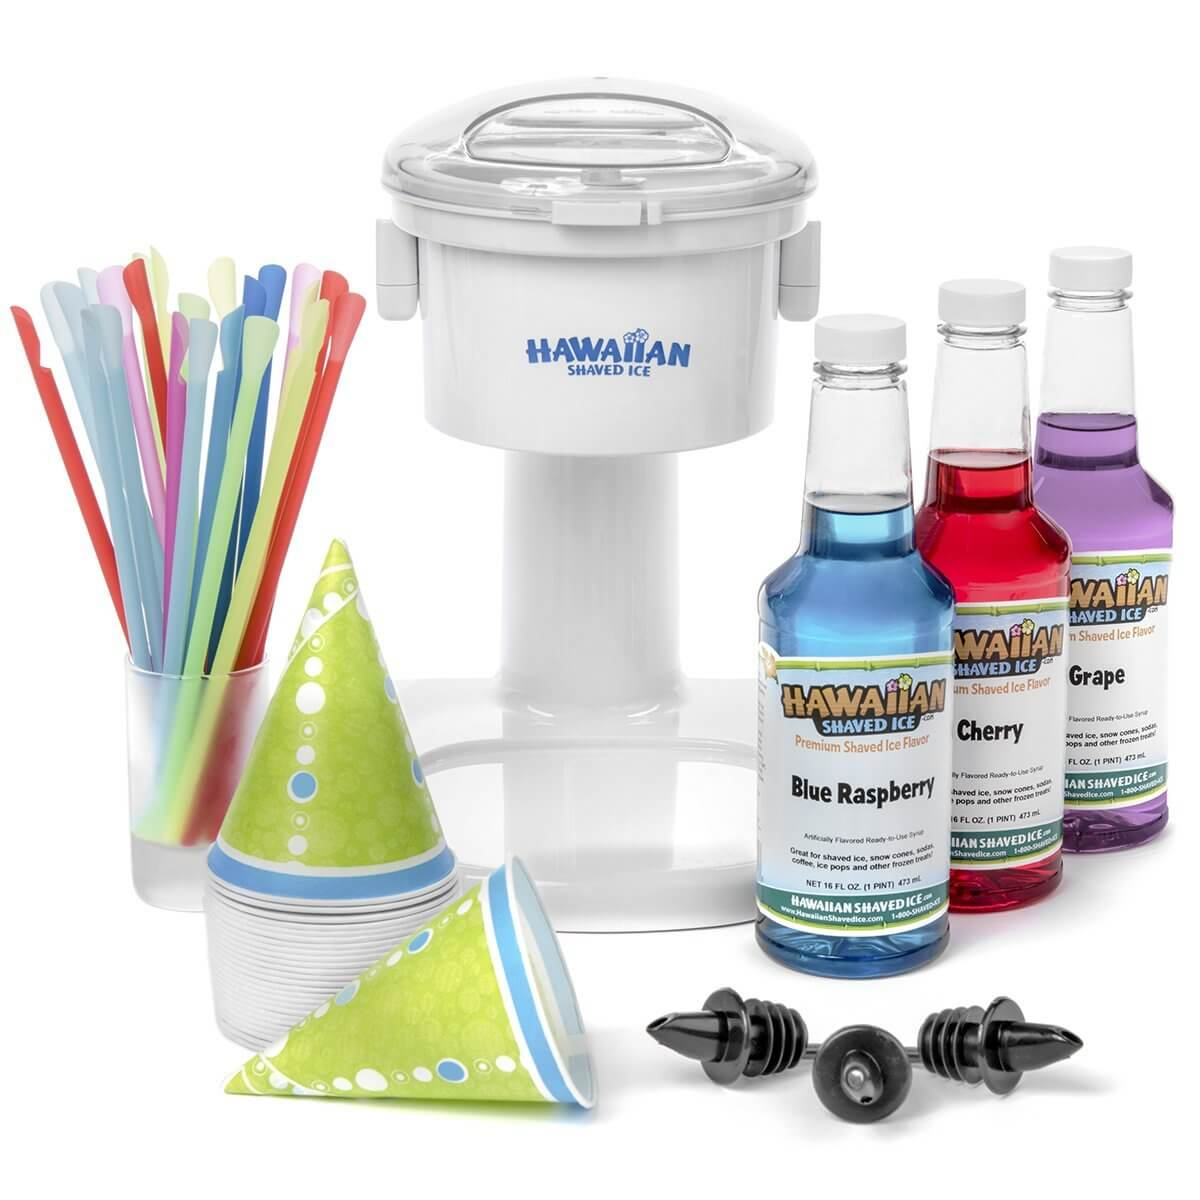 5.	Hawaiian Shaved Ice S700 Snow Cone Machine